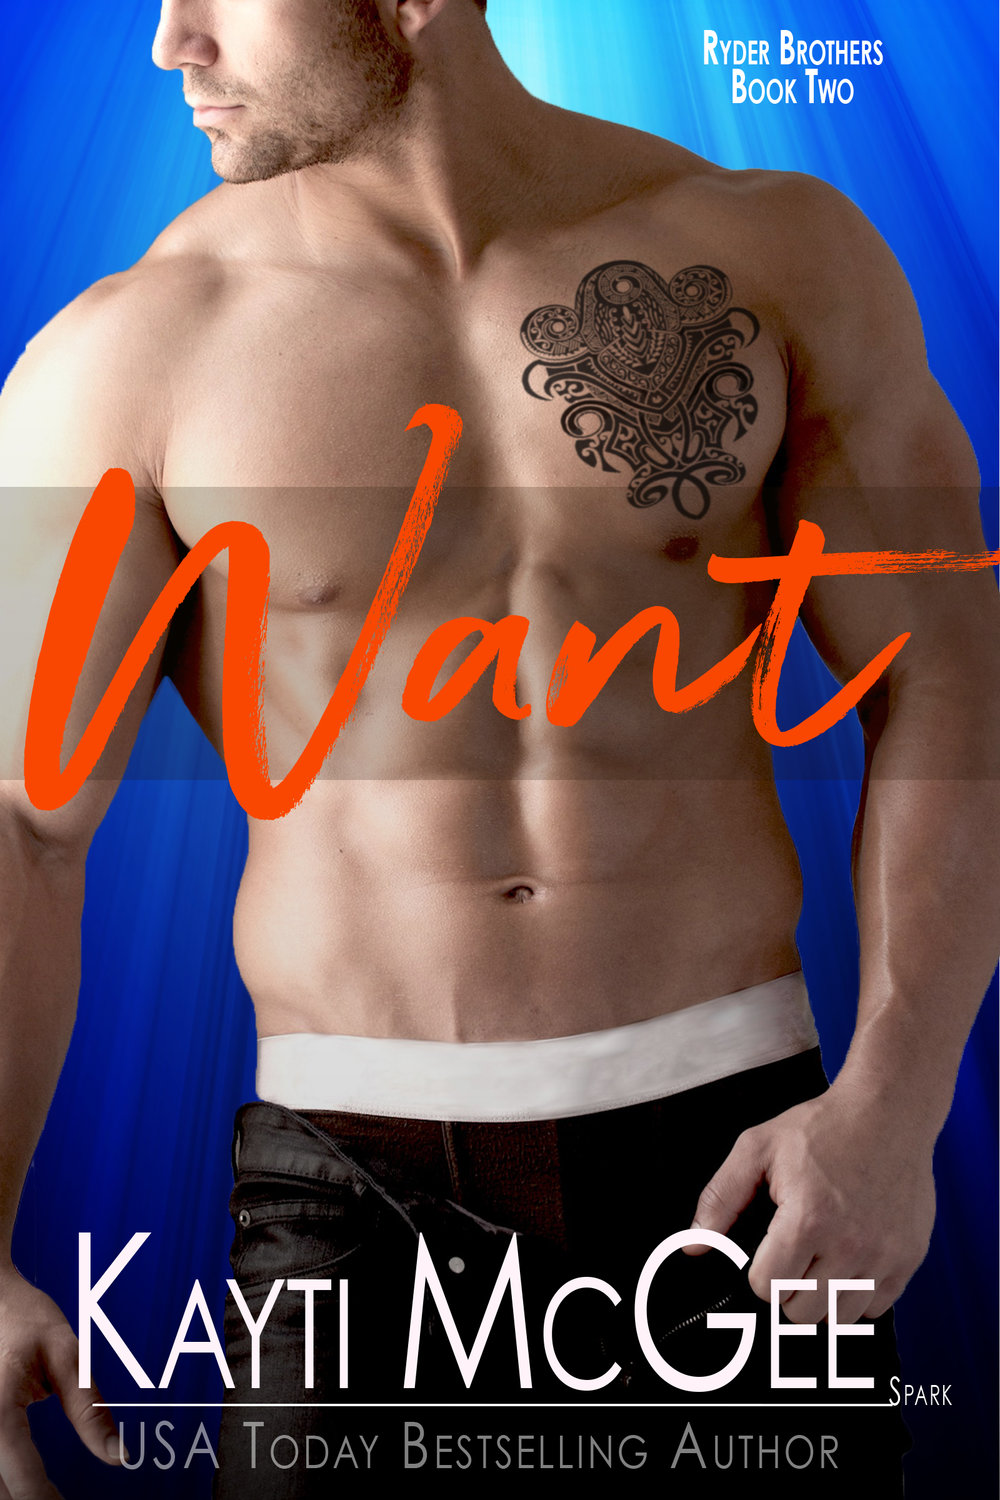 Want, Ryder Brothers Book 2